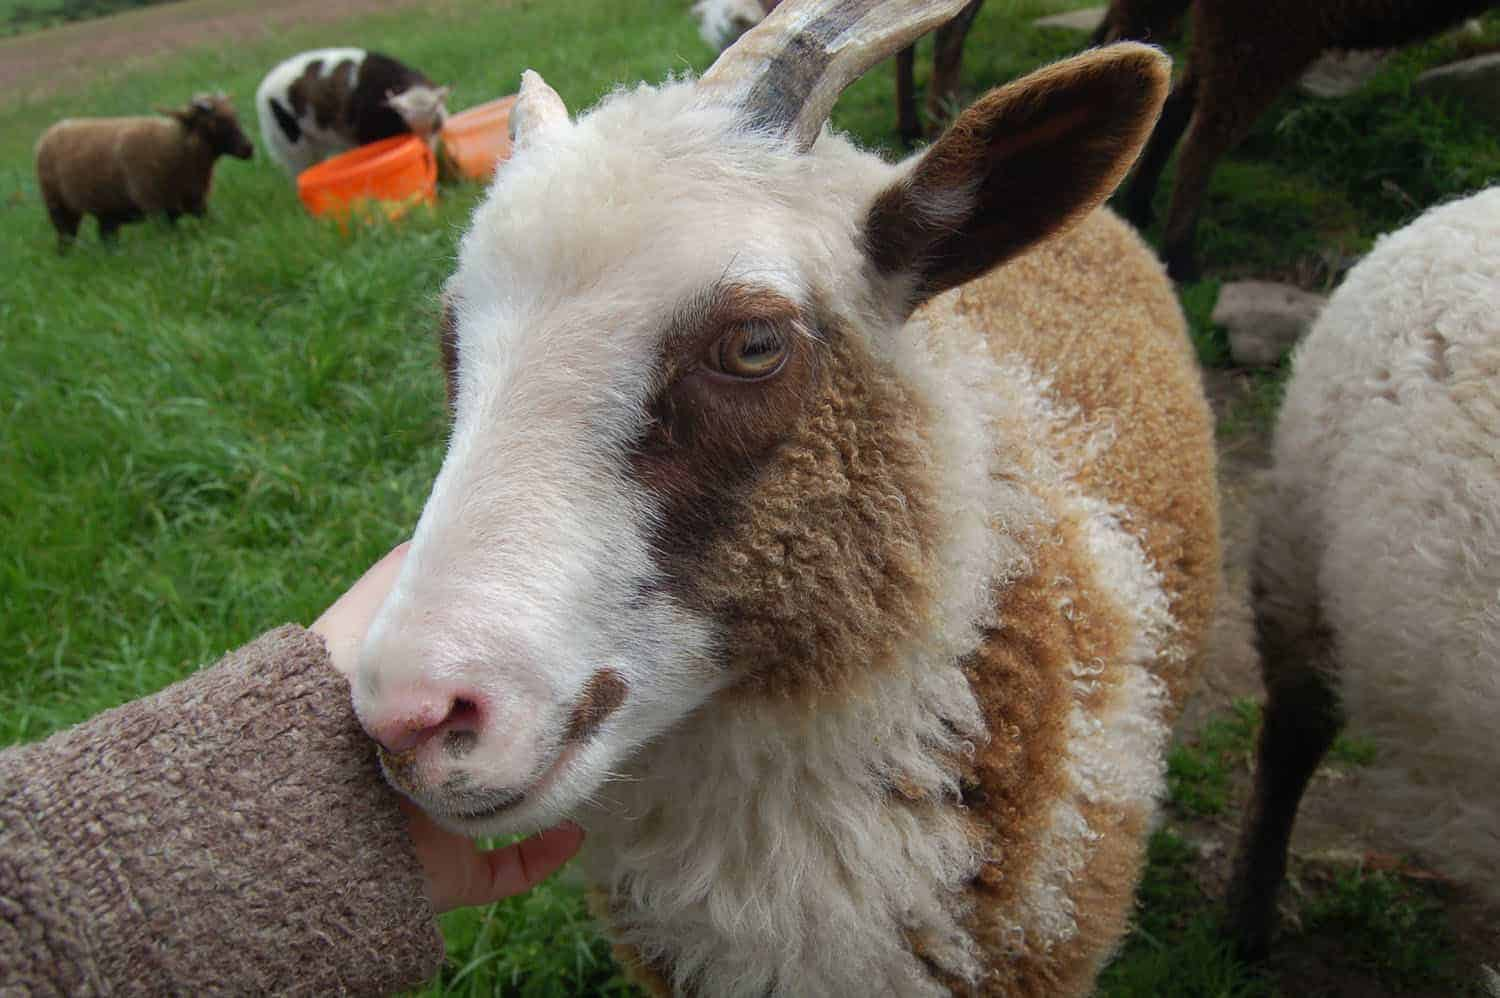 Martha lamb horns patchwork sheep moorit white spotted brown primitive sheep crossbreed